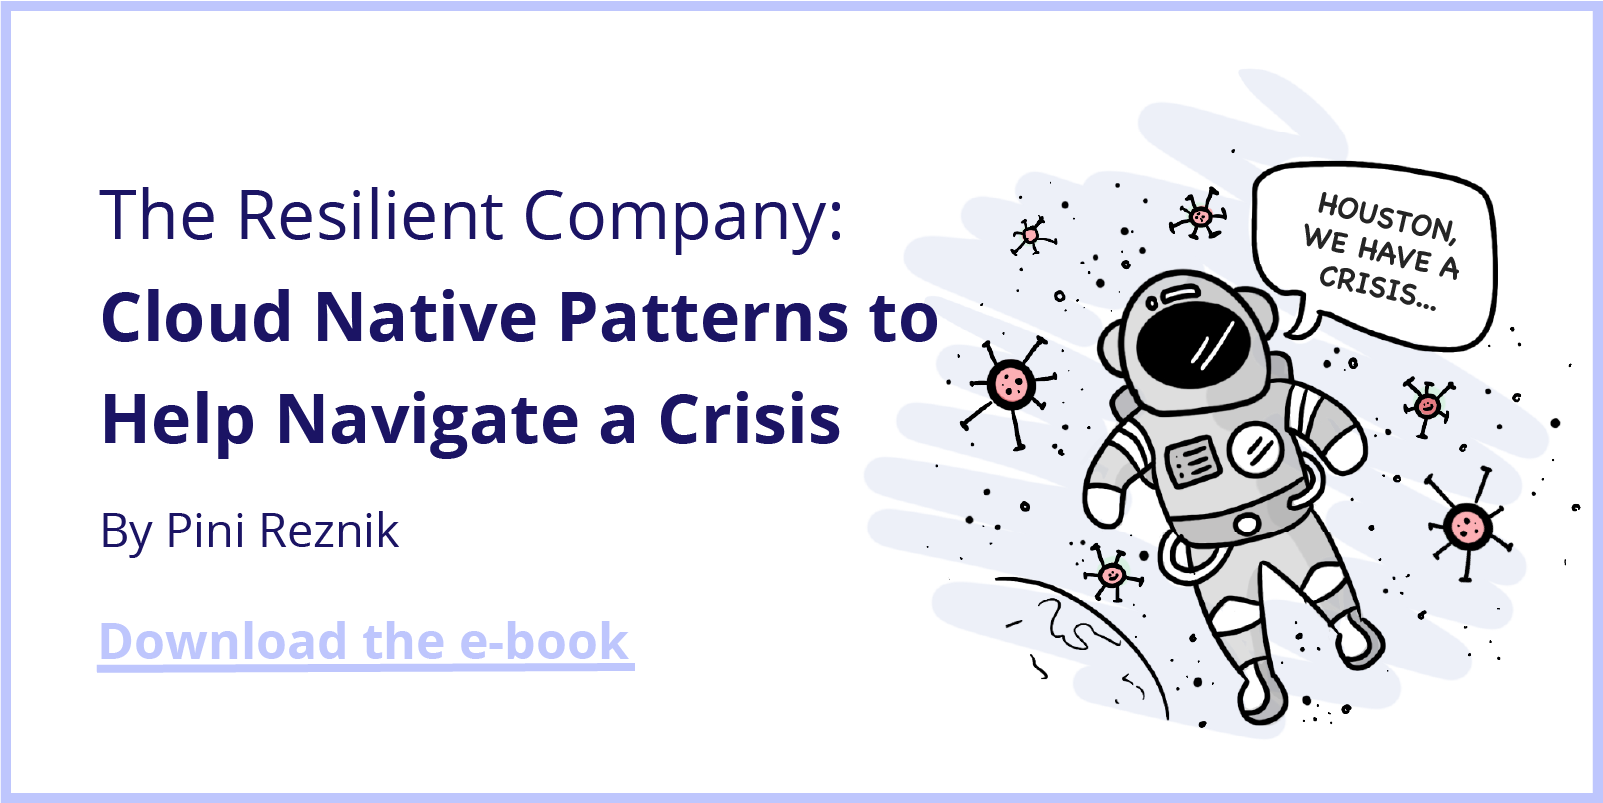 astronaut_crisis_patterns_ebook.png